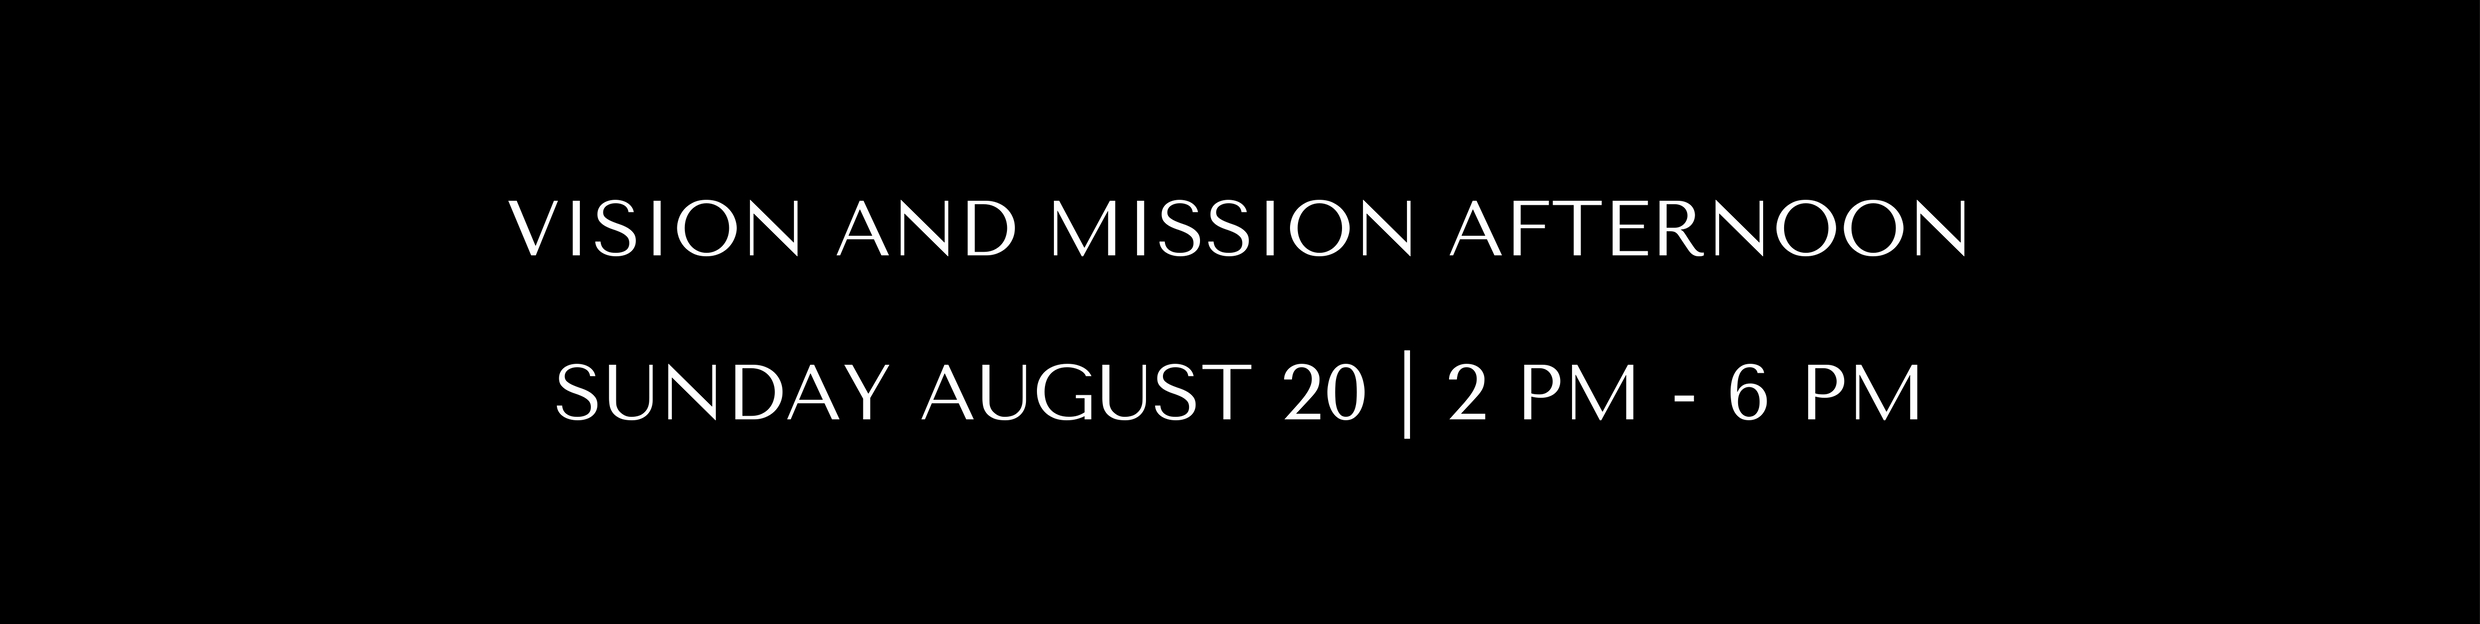 VISION AND MISSION AFTERNOON (2)